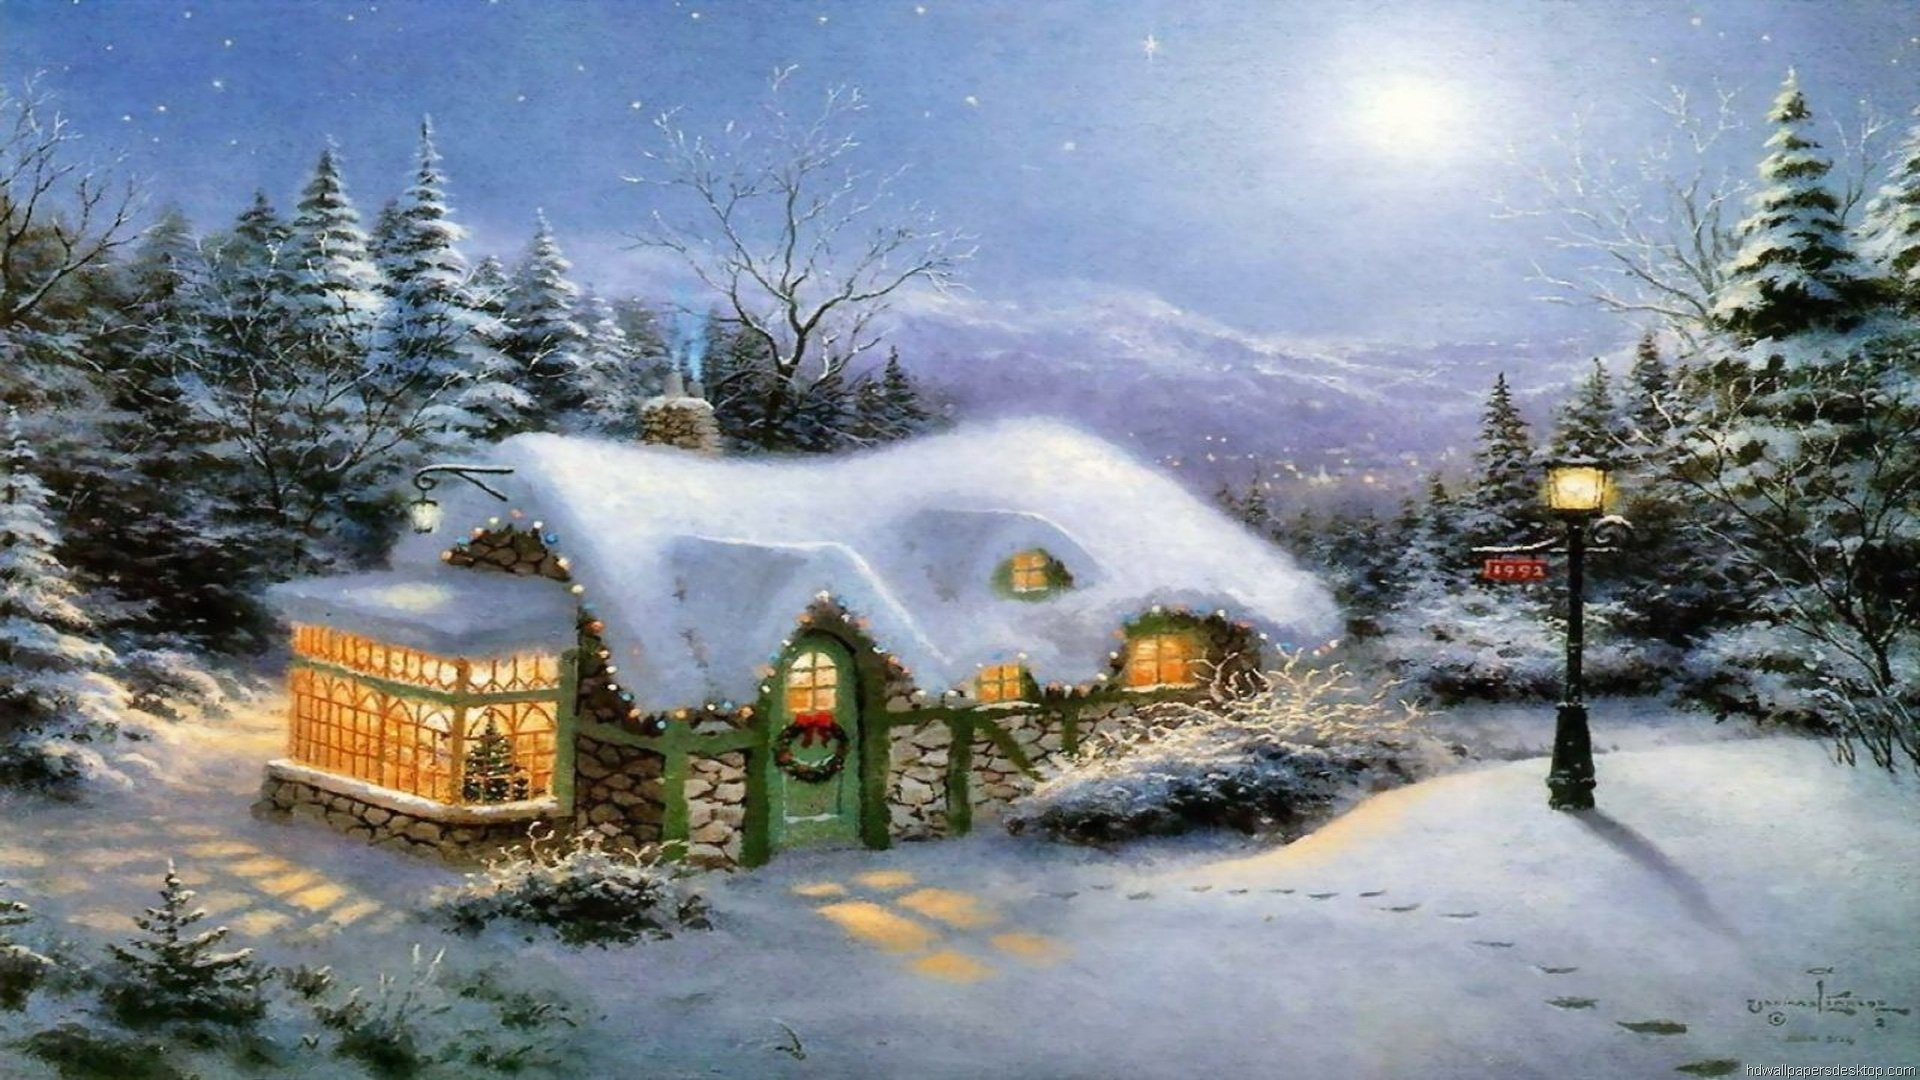 ... wallpaper thomas kinkade 2048x1536. View 0. Funny Quotes Contact Dmca 1920x1080